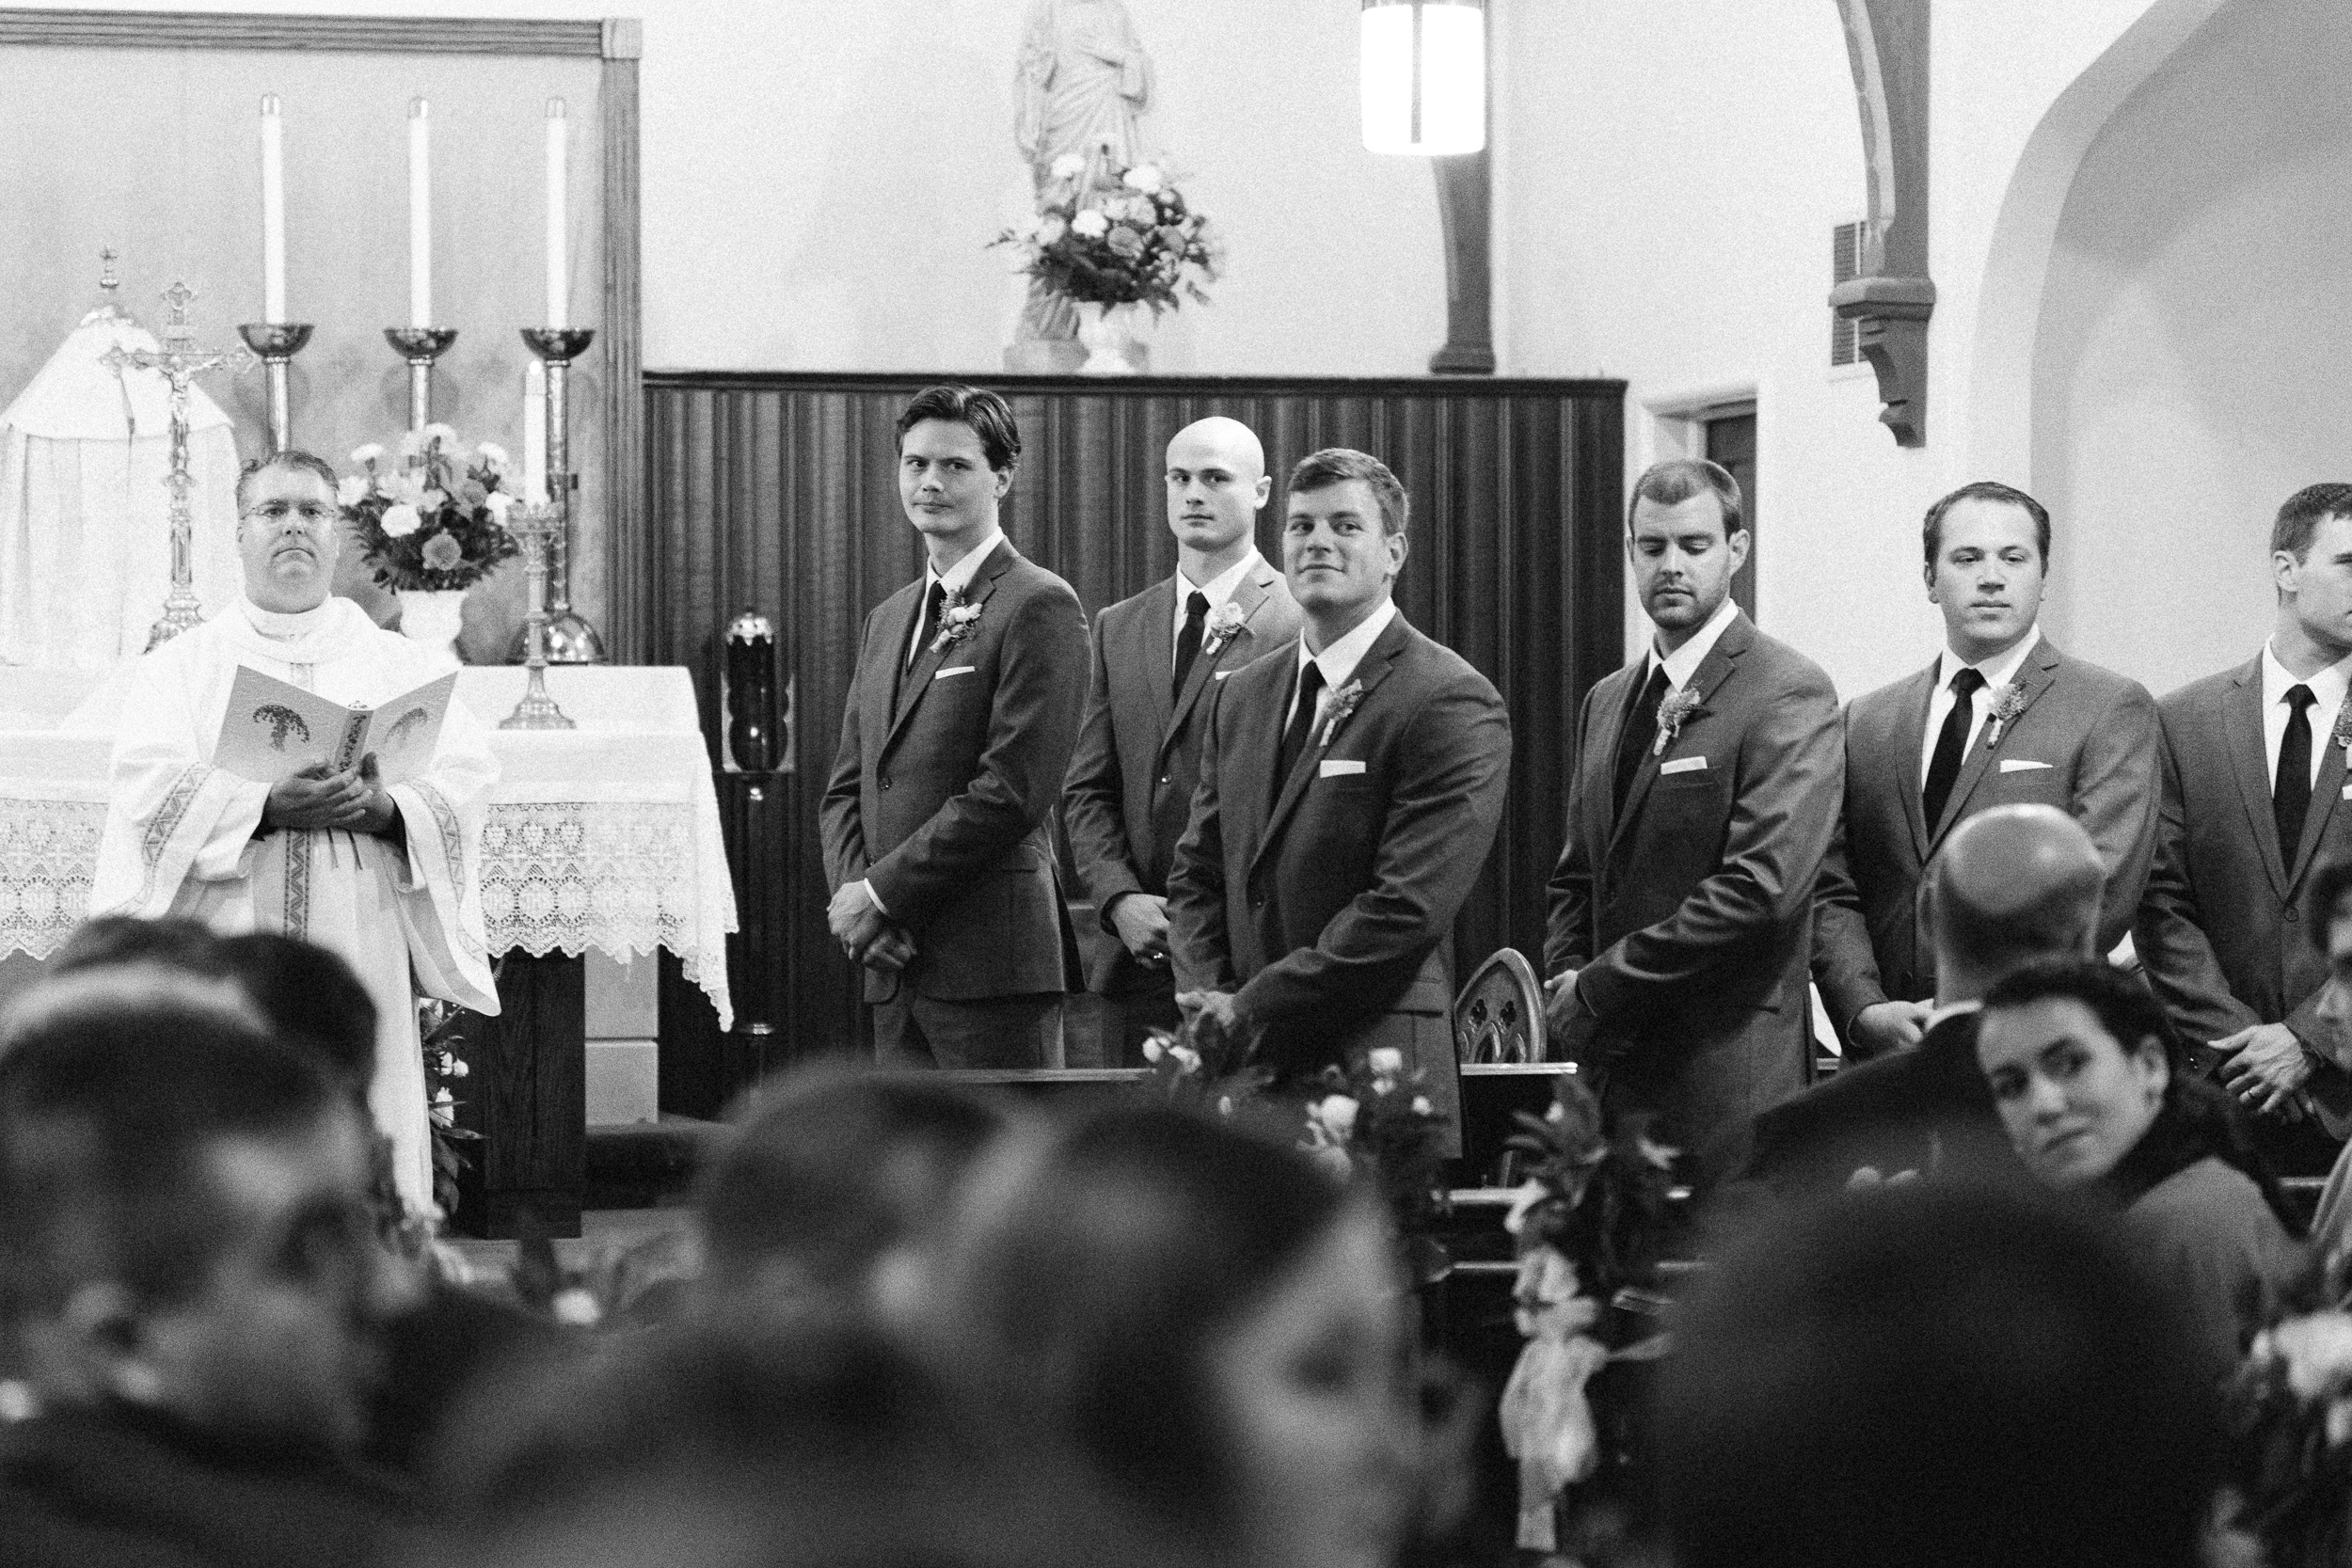 groom-sees-bride-for-the-first-time-wedding-ceremony